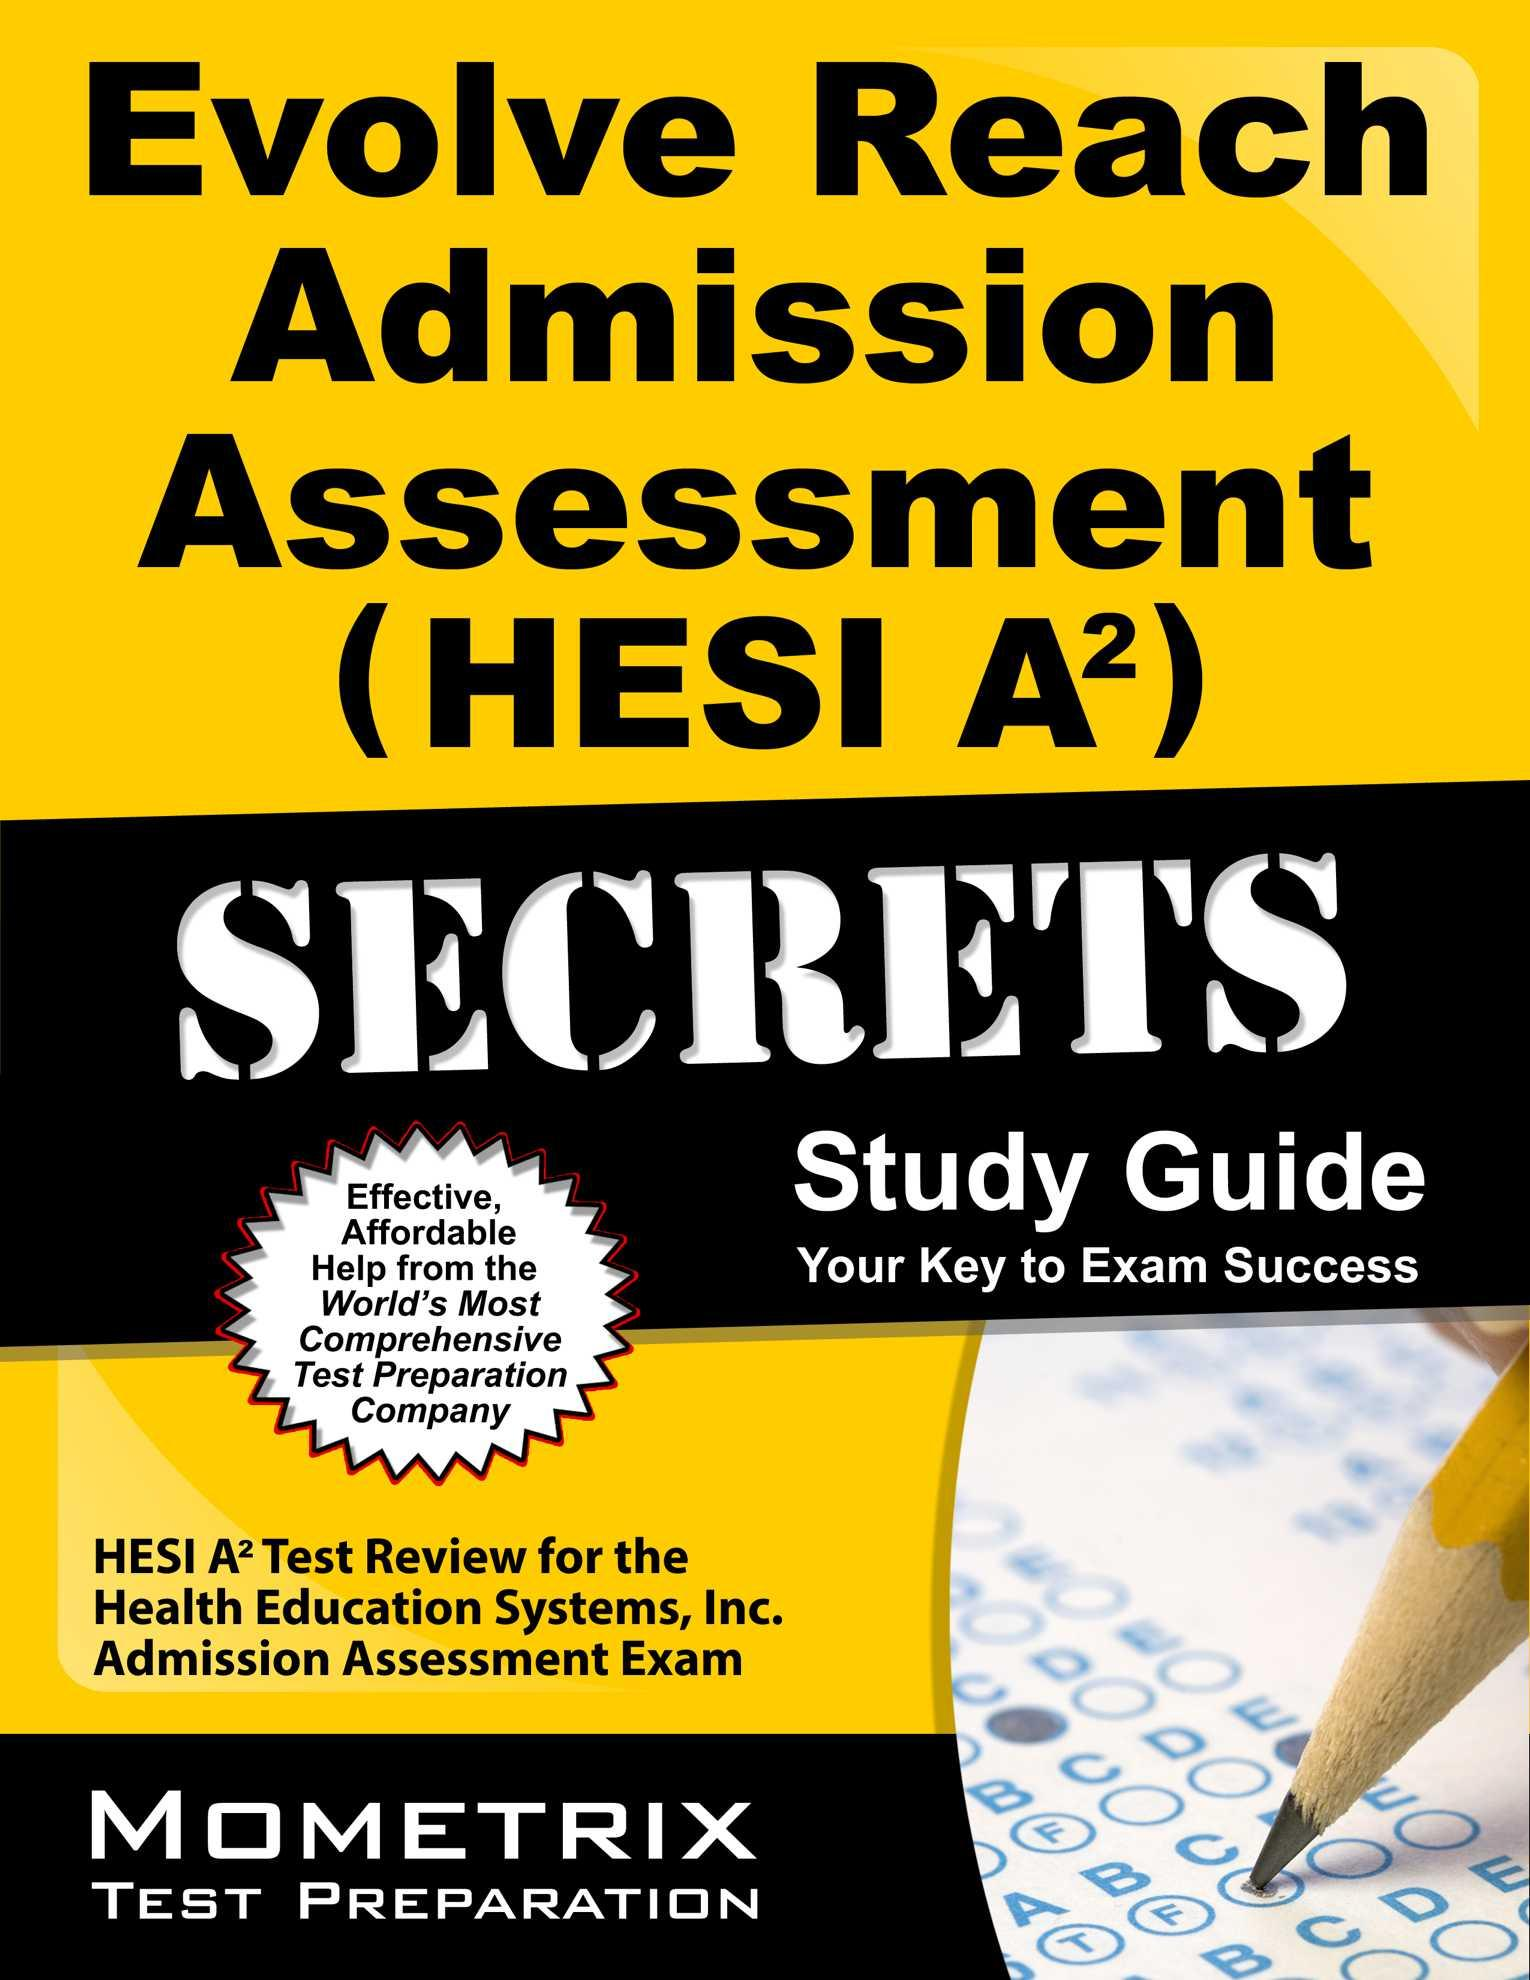 Evolve Reach Admission Assessment (Hesi A2) Secrets Study Guide ...